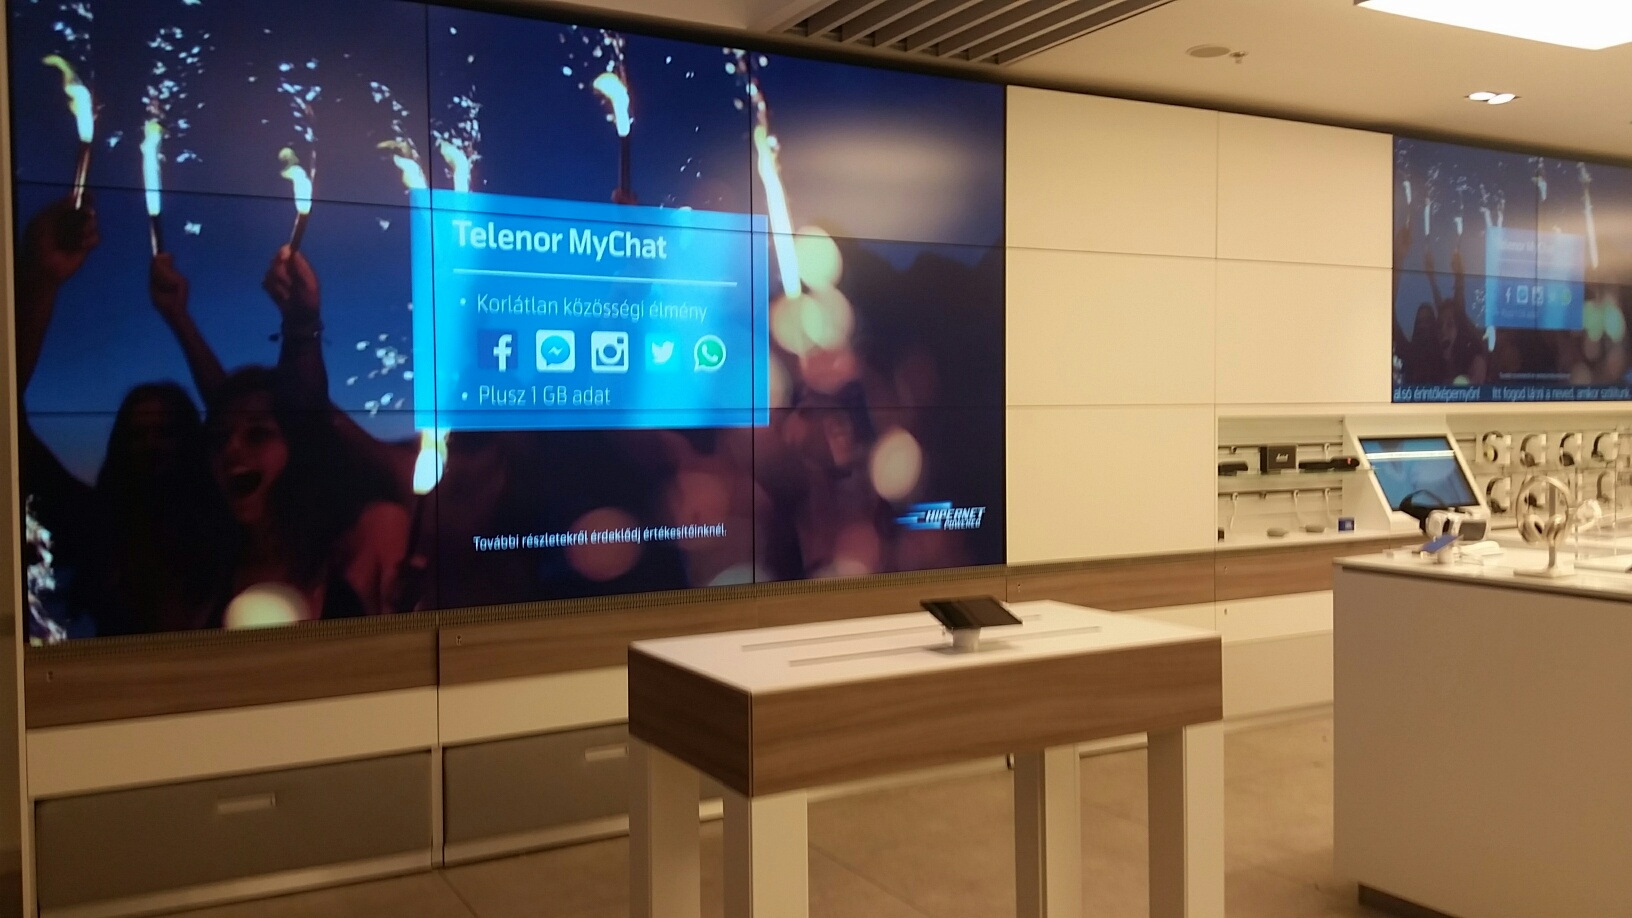 Telenor with IntuiFace Touchscreens